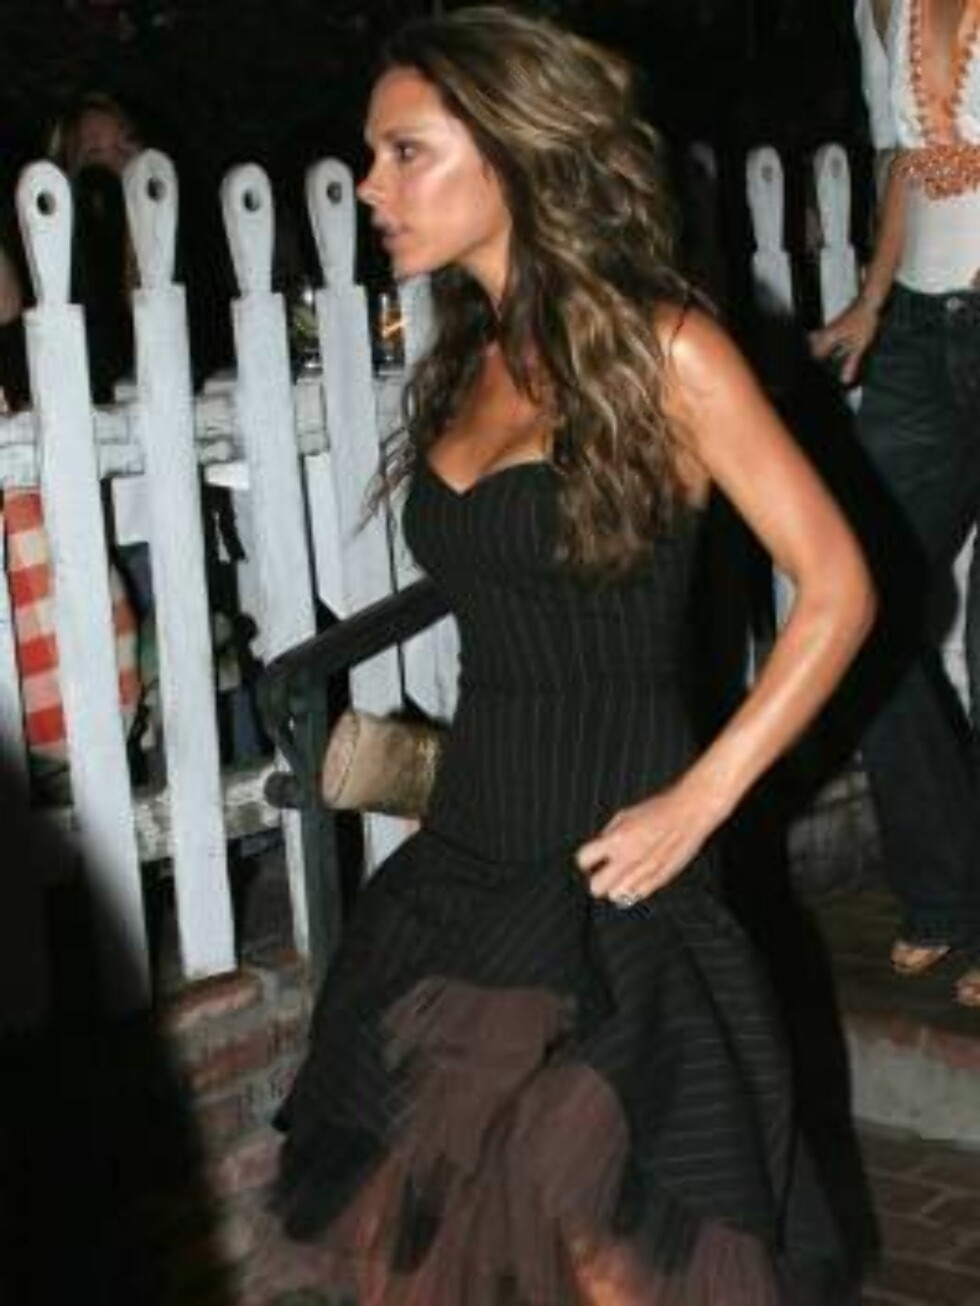 Victoria Beckham at the Ivy restaurant in Beverly Hills October 22, 2005 X17agency exclusive / ALL OVER PRESS Foto: All Over Press